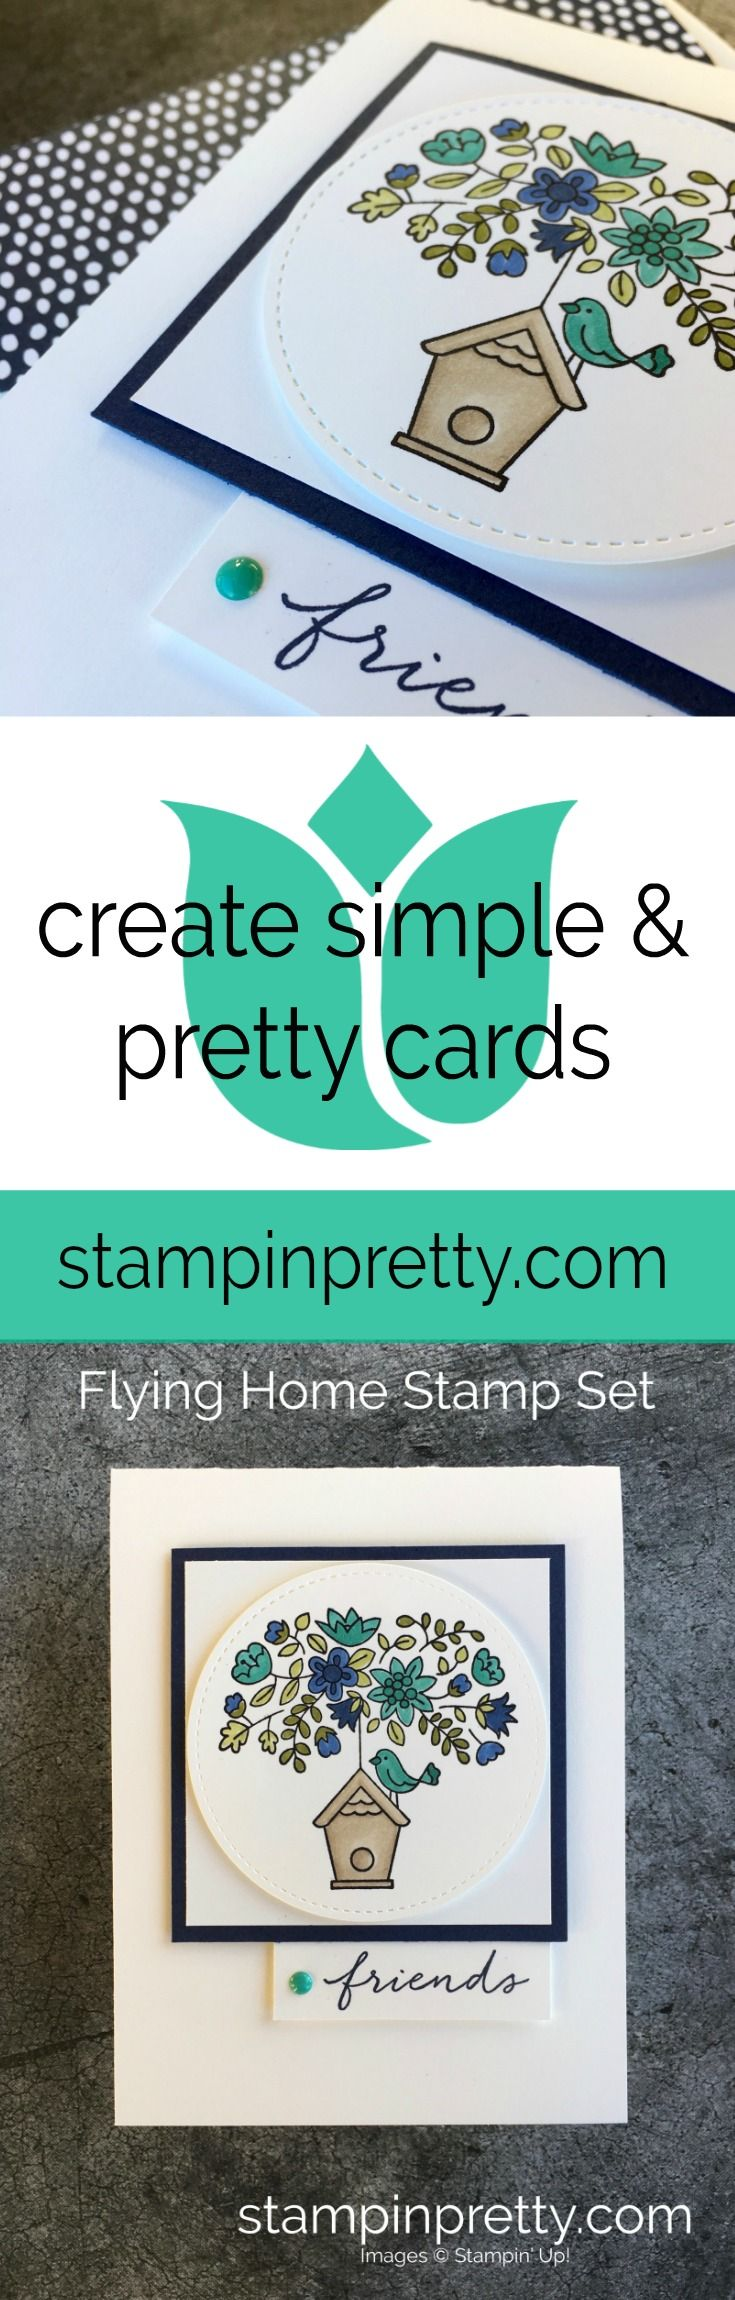 Stampin' Blends Magic and the Flying Home Stamp Set from the 2018 Occasions Catalog from Stampin' Up! Card created by Mary Fish, Stampin' Pretty.  #maryfish #stampinpretty